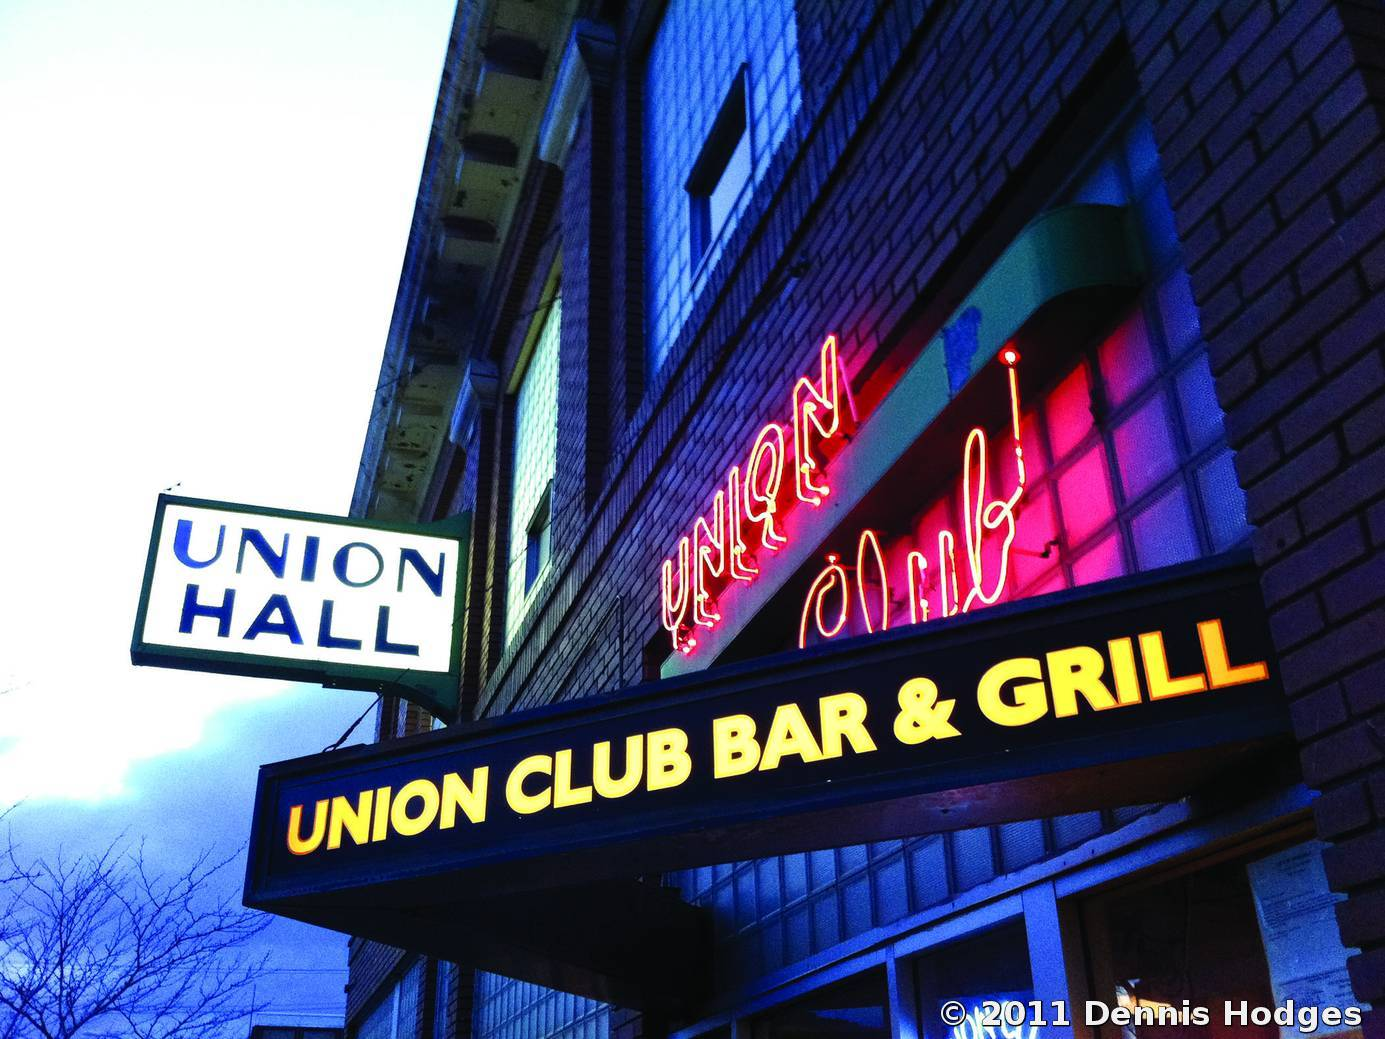 union hall singles The roofers union, j bengoy aug 25 8:00 pm this event is 21 and over more info tickets  union pool 484 union ave brooklyn, ny 11211 get directions .